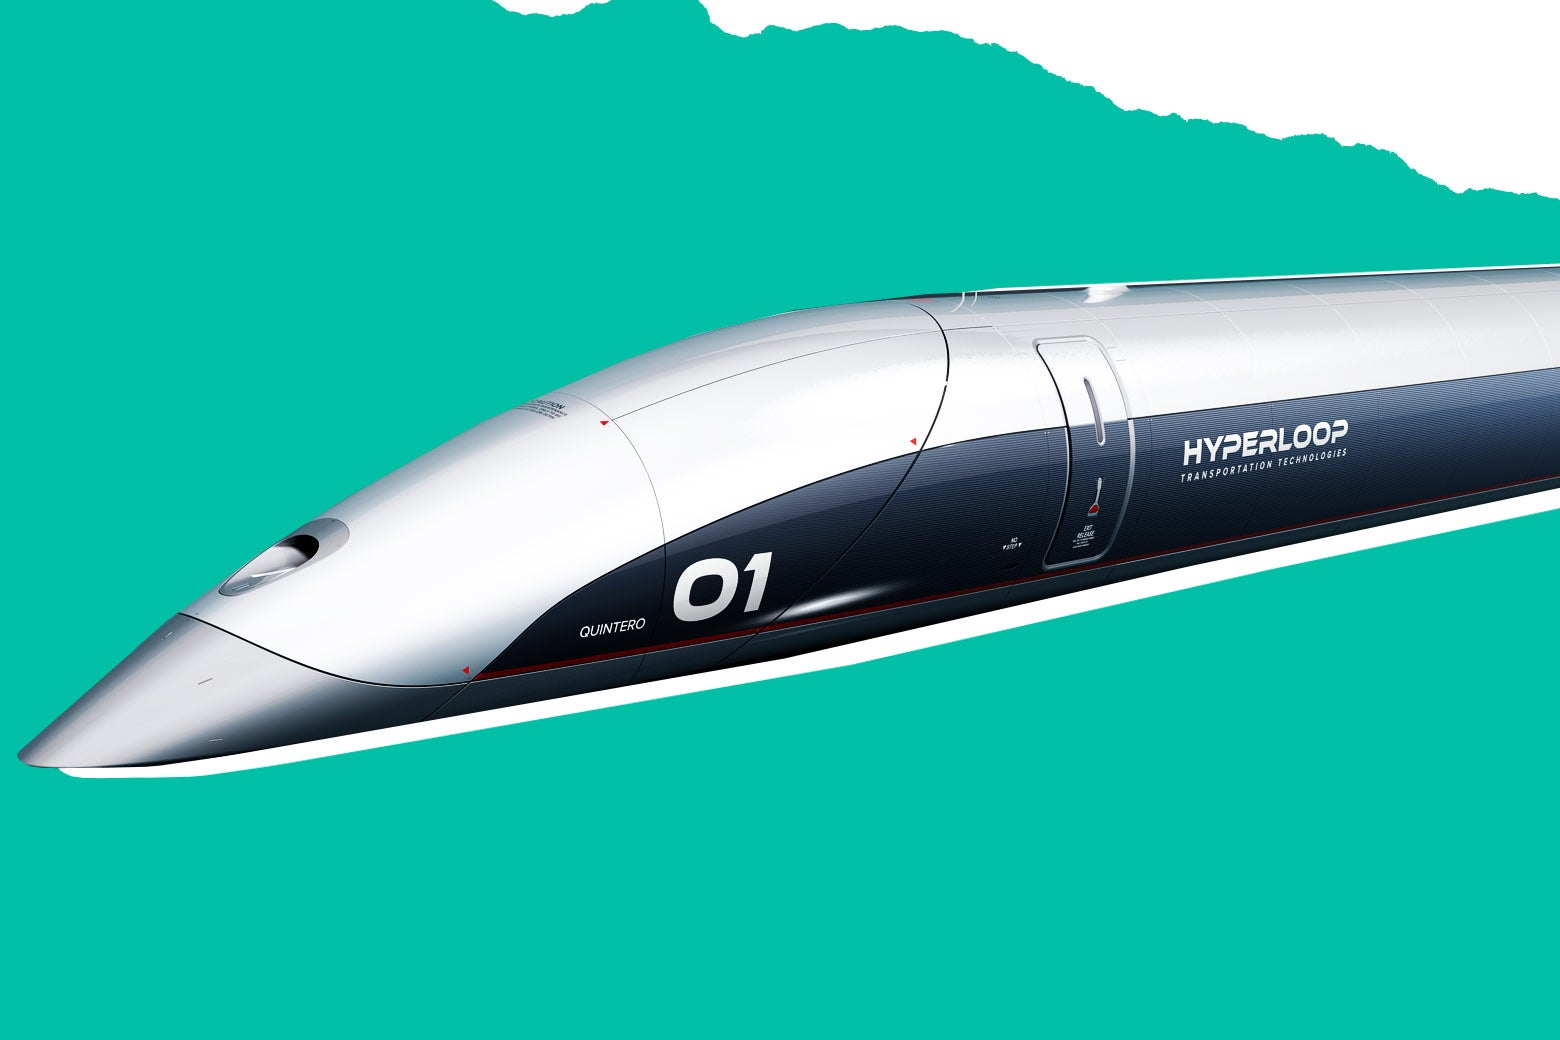 A Hyperloop capsule passenger car.